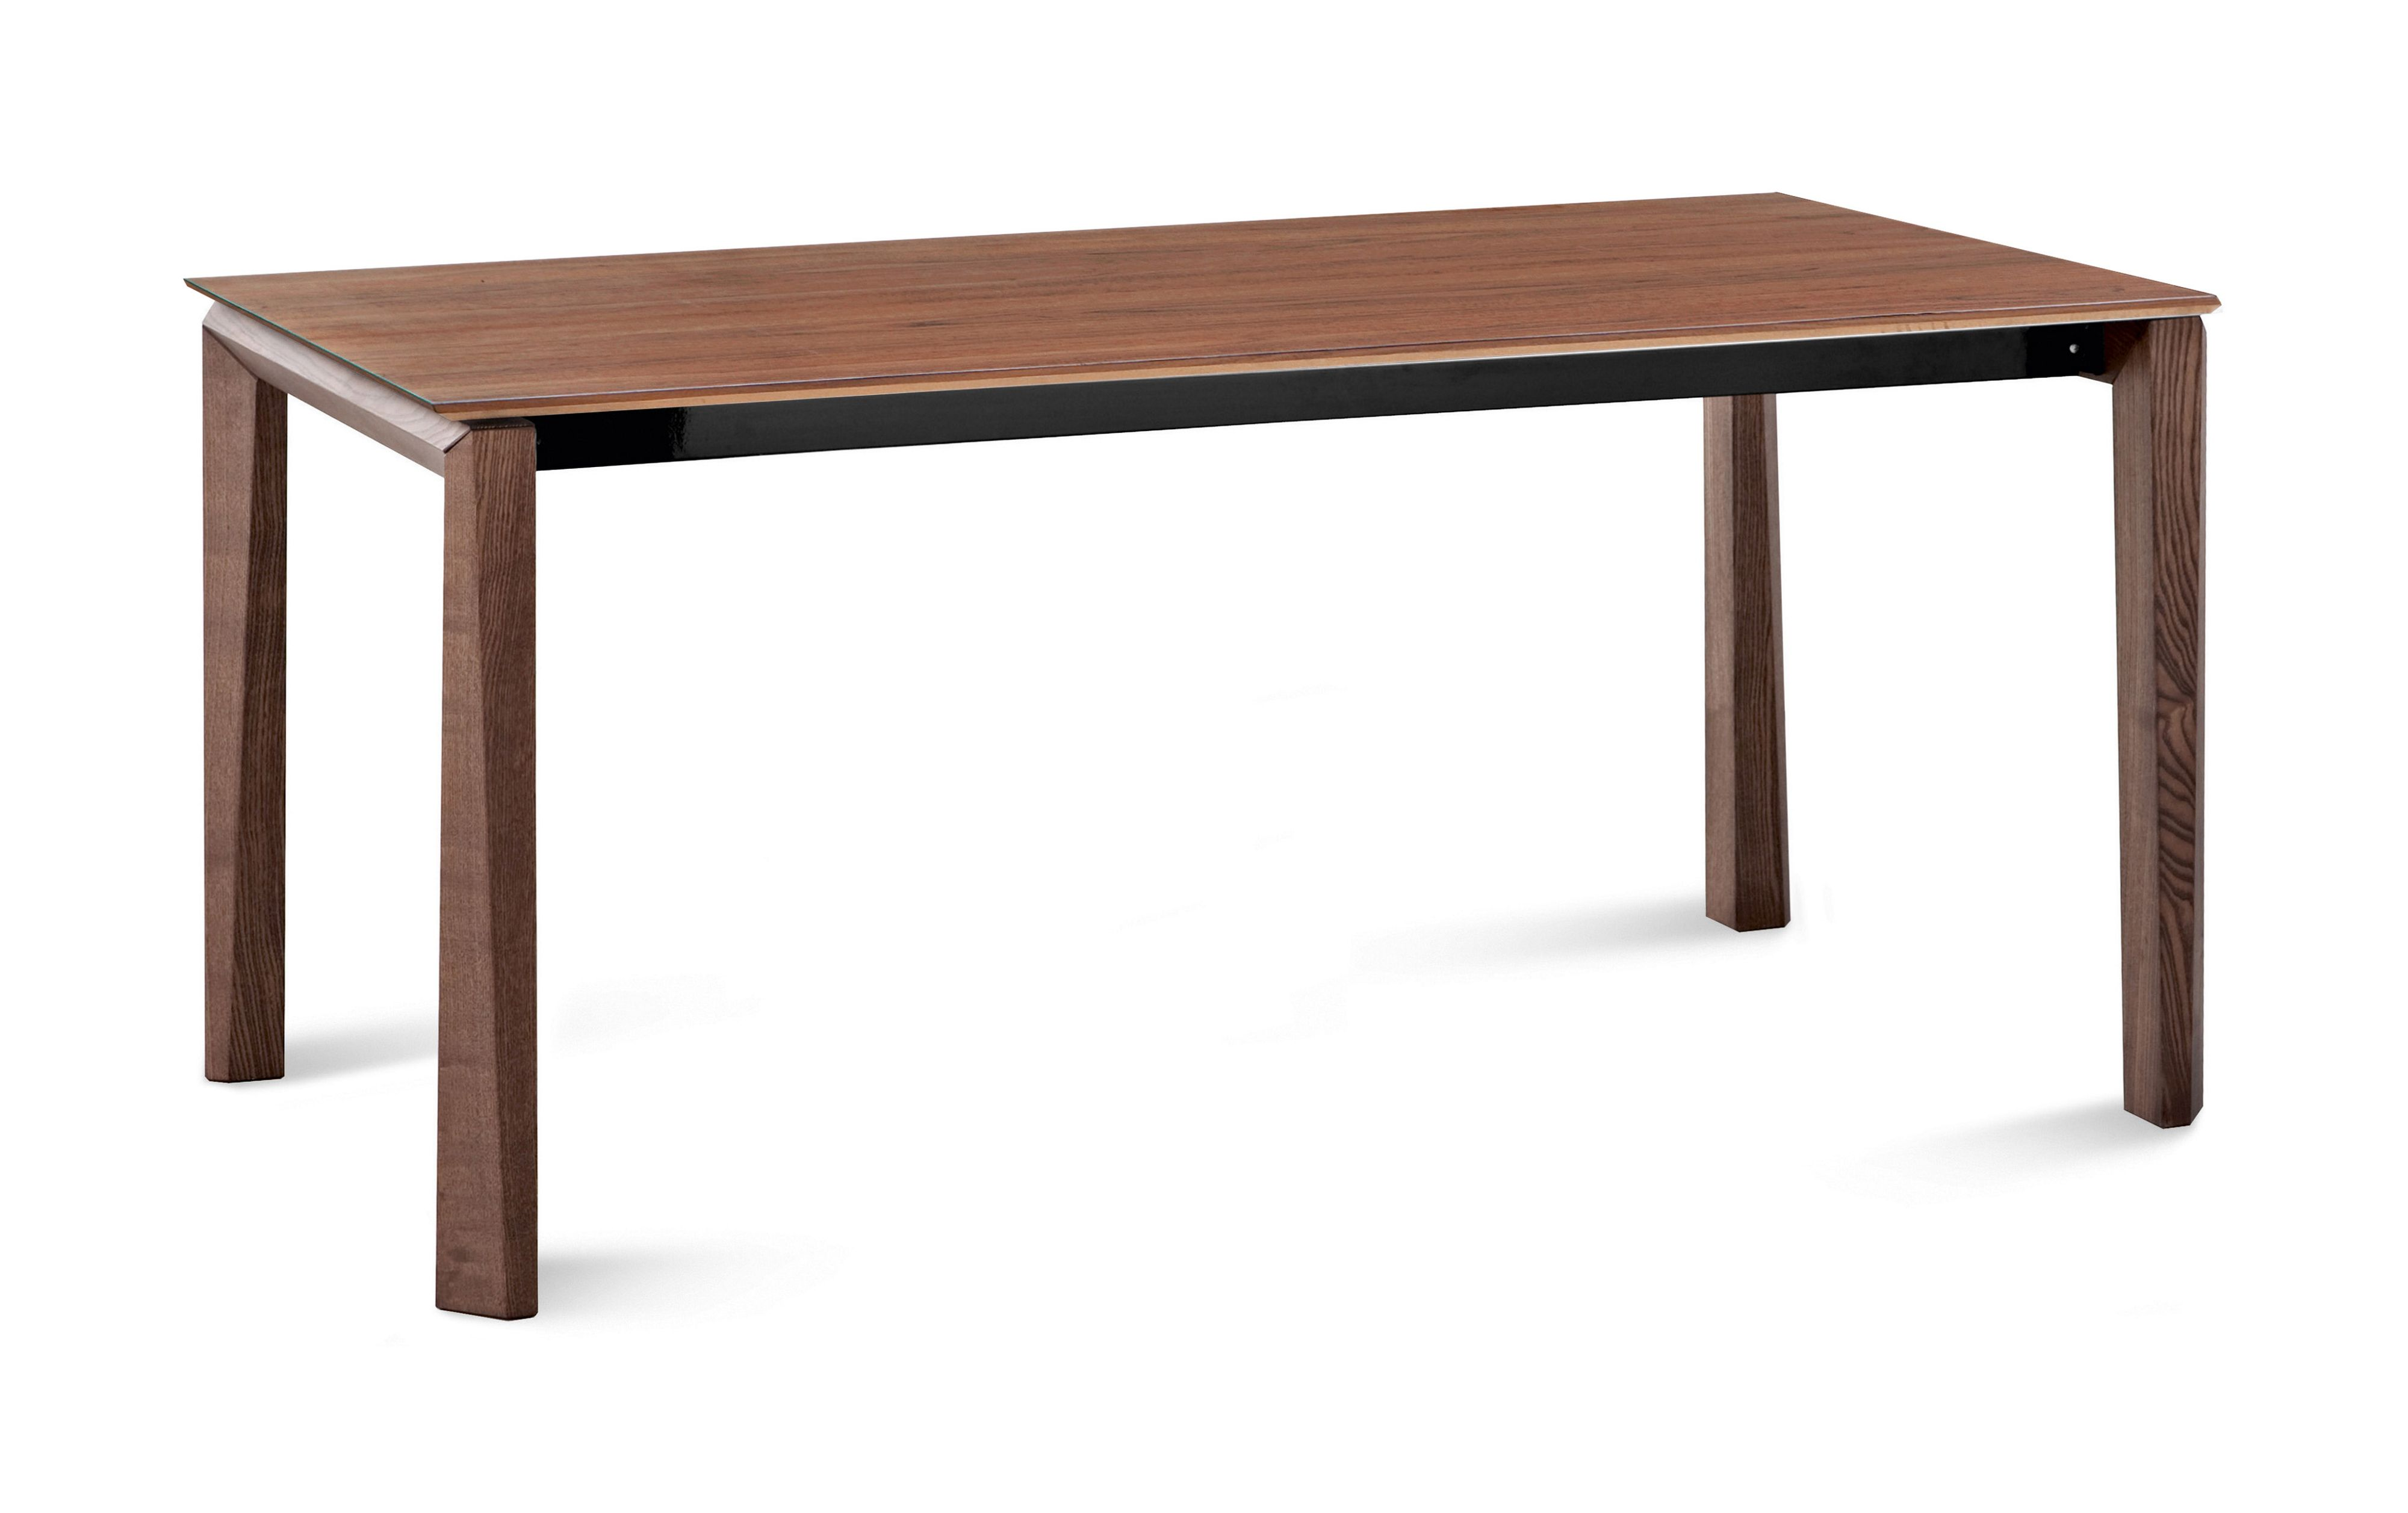 Beech extending dining table Shop for cheap Furniture  : I1689453620120130204 from www.priceinspector.co.uk size 4000 x 2514 jpeg 294kB